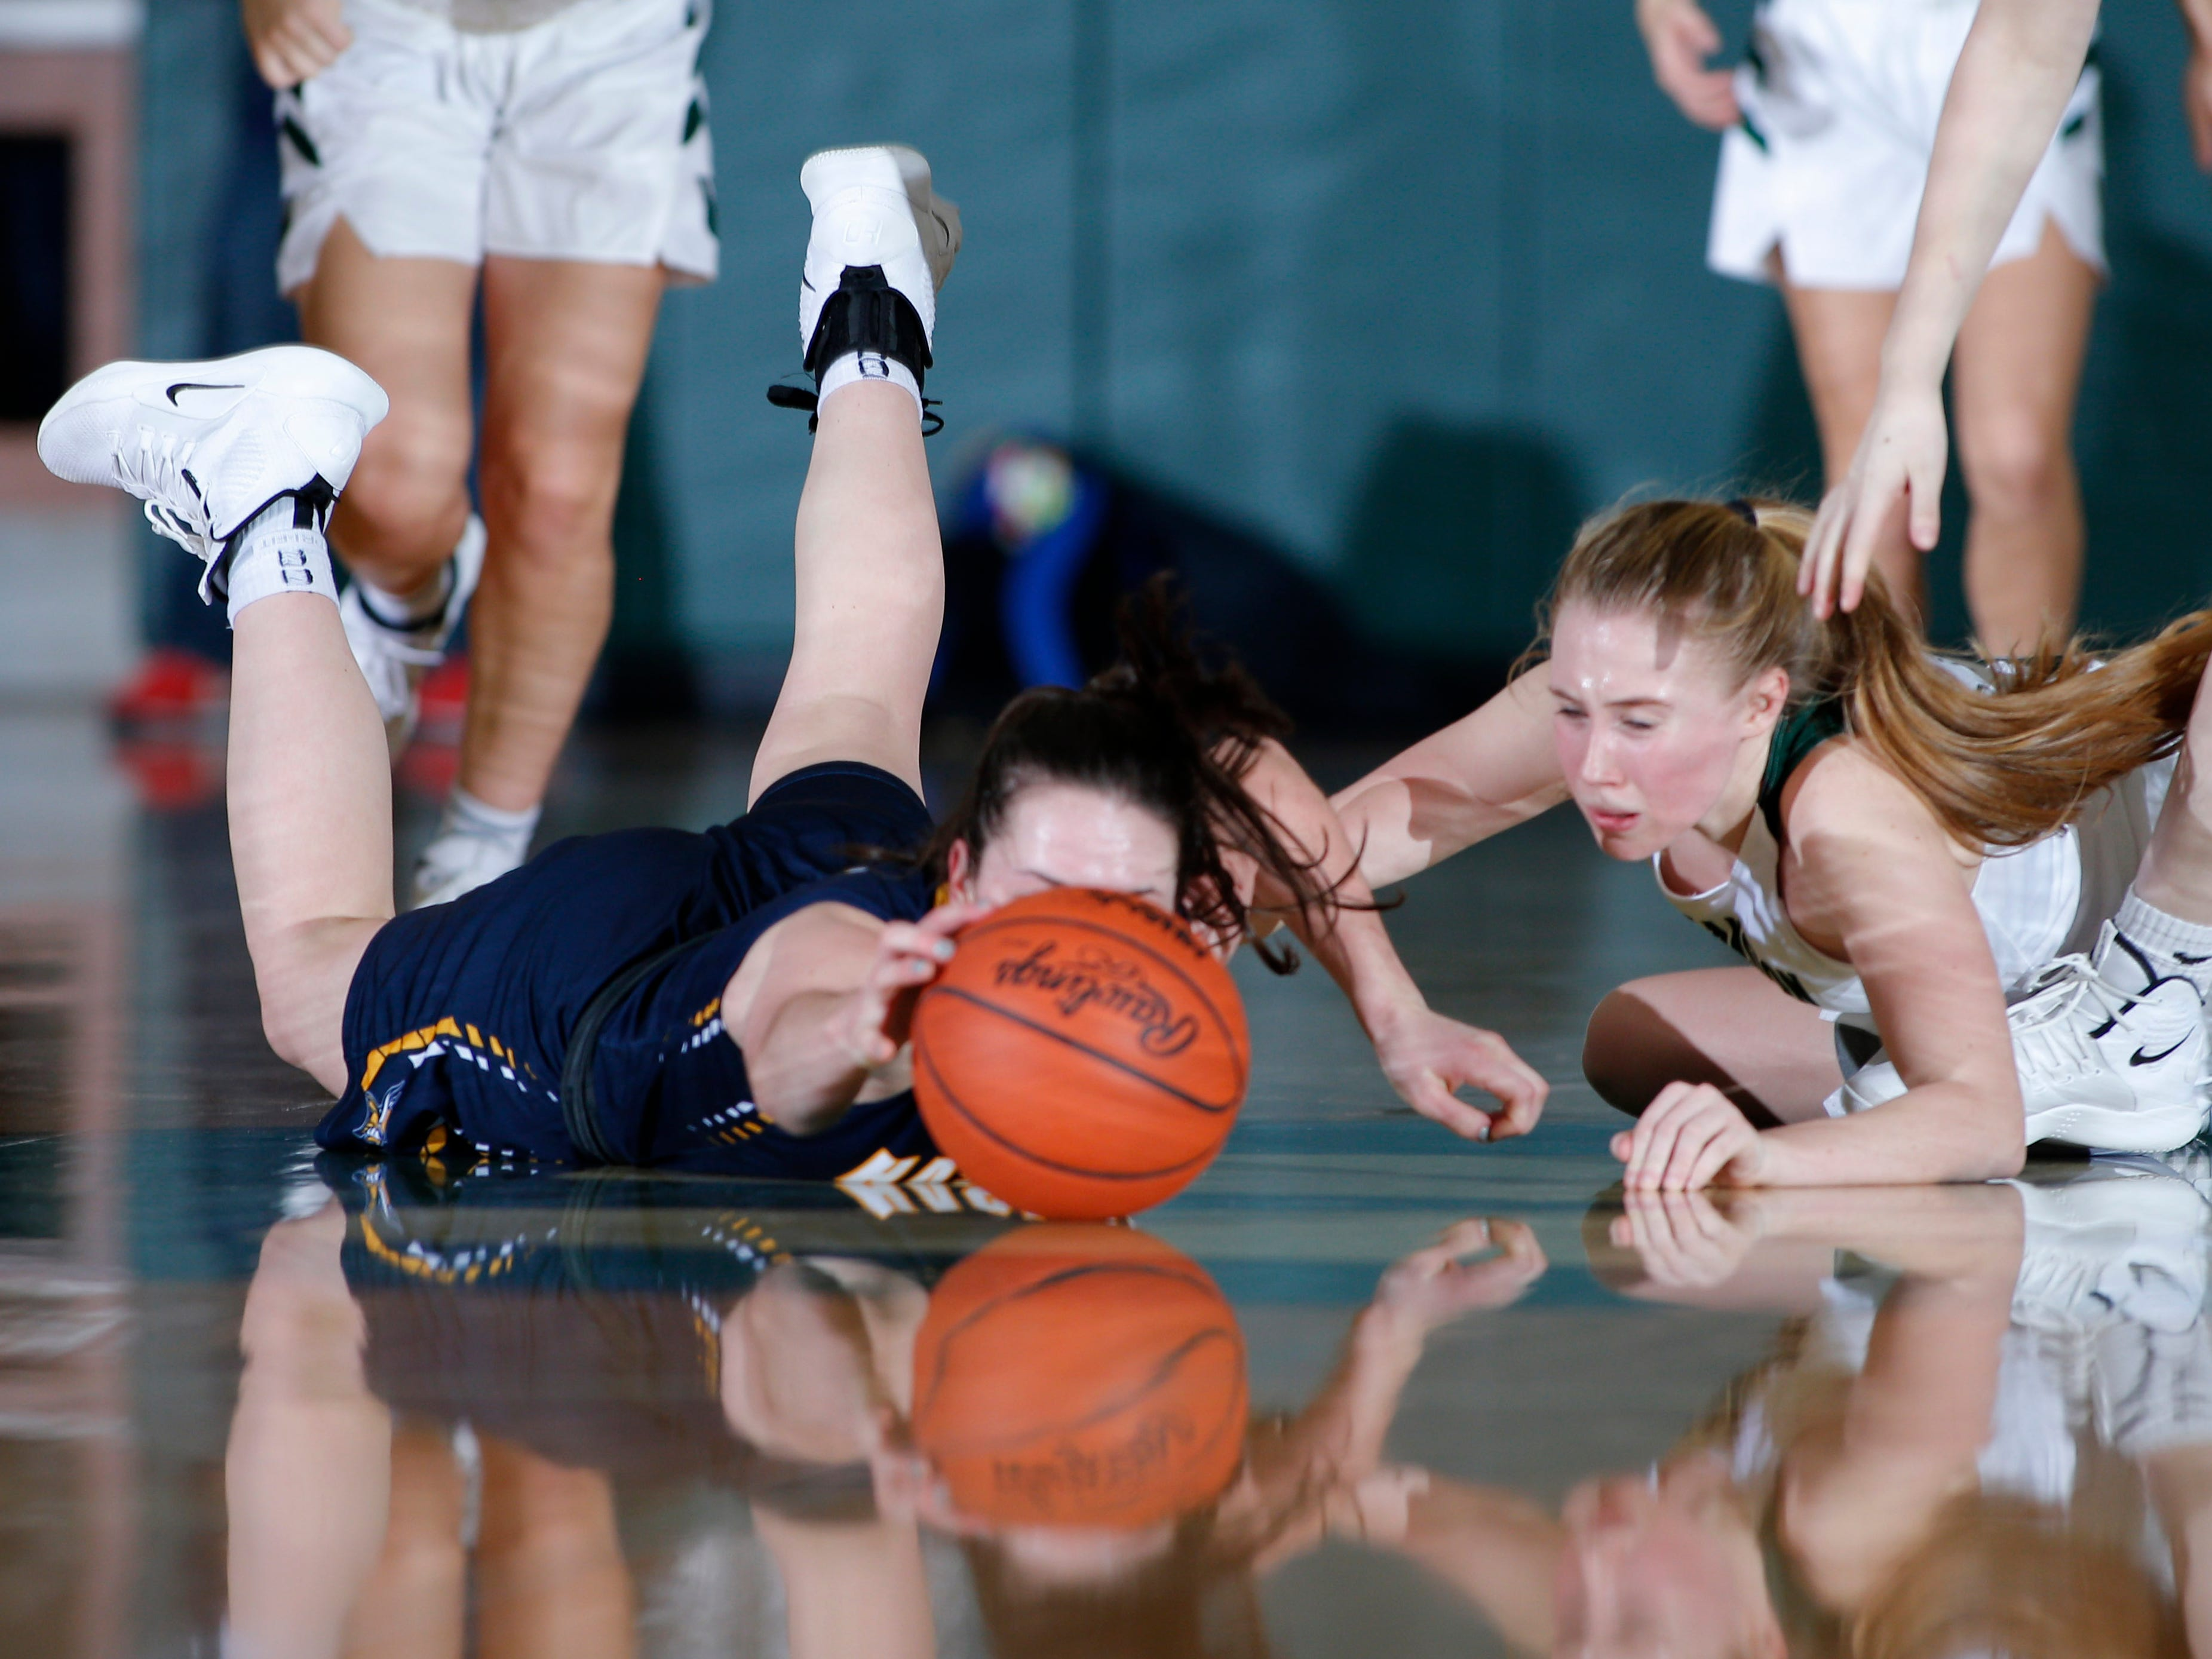 Haslett's Ella McKinney, left, and Williamston's Allie Sherrer dive for the ball, Friday, Jan. 11, 2019, in Williamston, Mich.